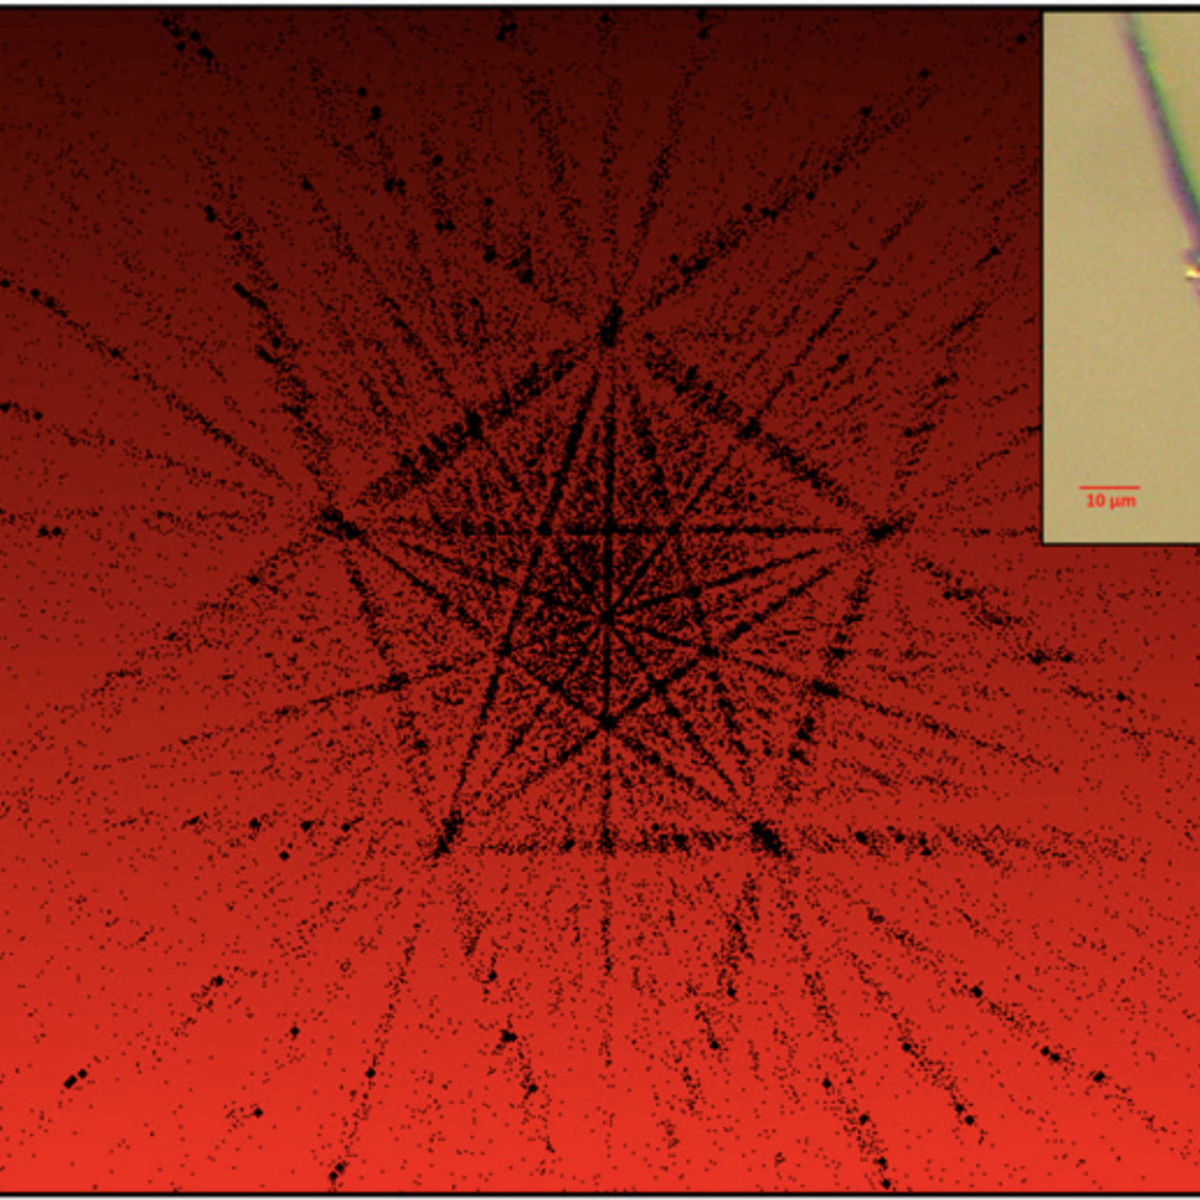 When examining the manufactured quasicrystal using a technique called X-Ray Diffraction, the fivefold symmetry becomes apparent. Inset: The fragment examined is attached to a thin length of carbon fiber. Credit: Asimow et al.